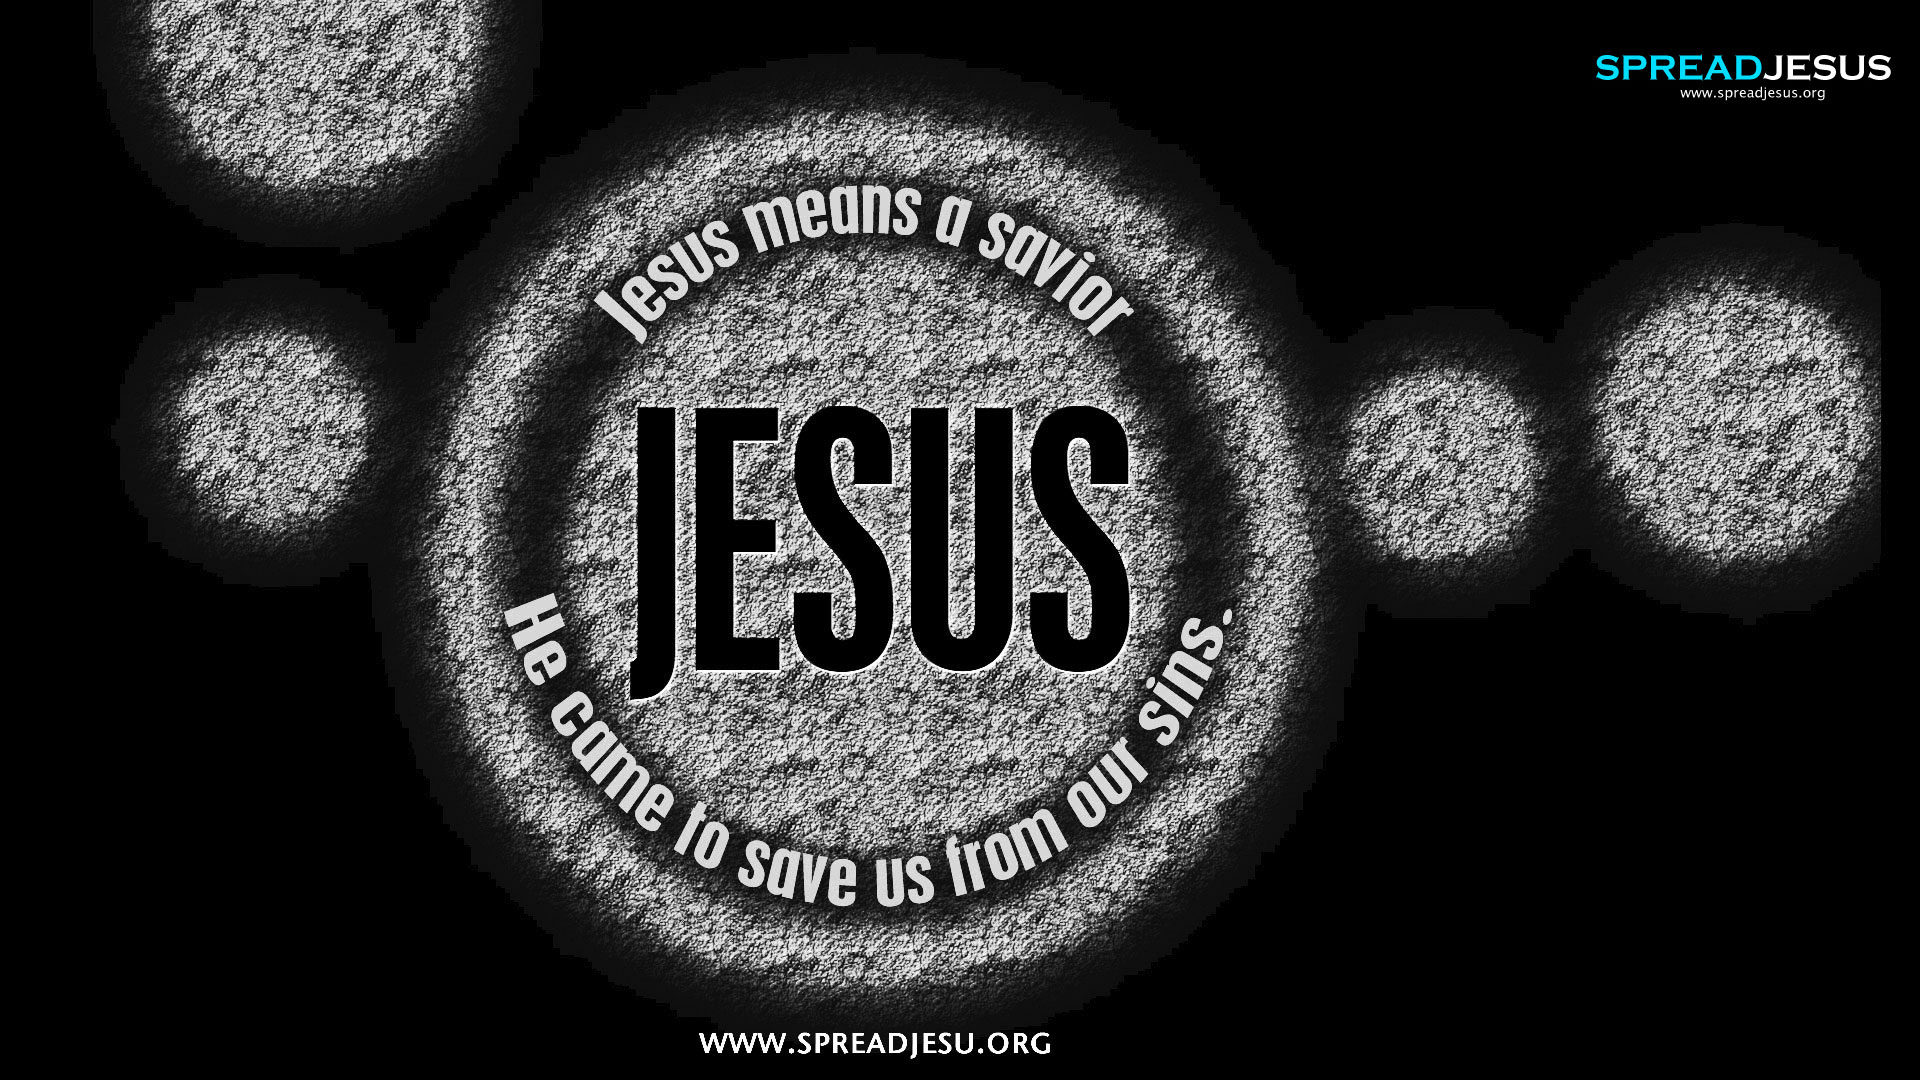 Jesus Means A Savior HD wallpapers free downloading Jesus Means A Savior He came to Save us from our Sins HD wallpaper 7 VIEW AND DOWNLOAD